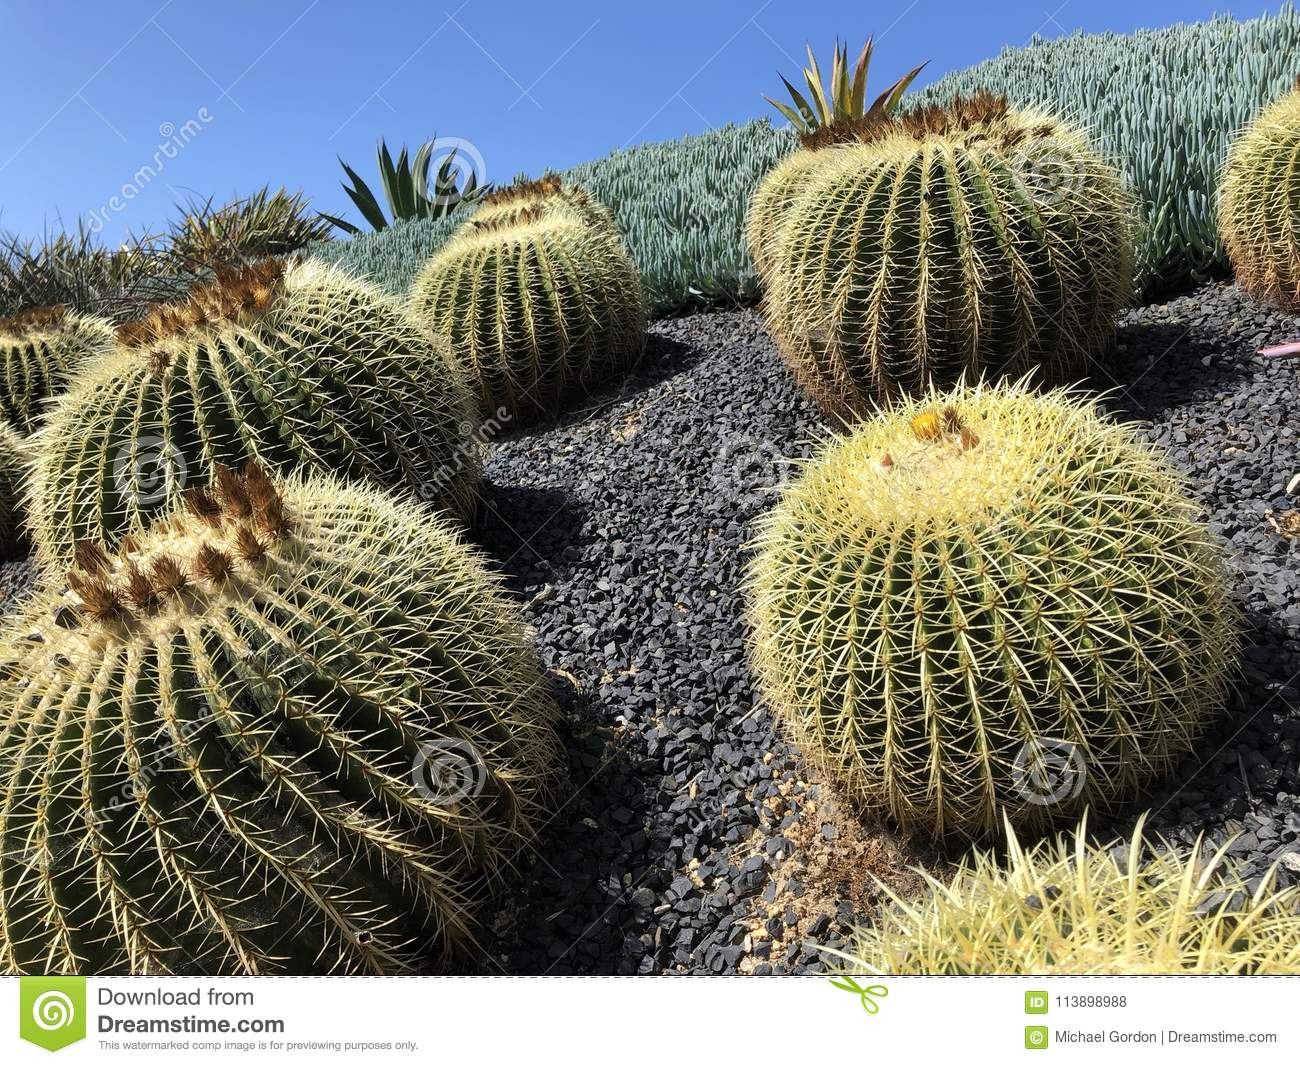 Confirm. cactus plants of southern california recommend you